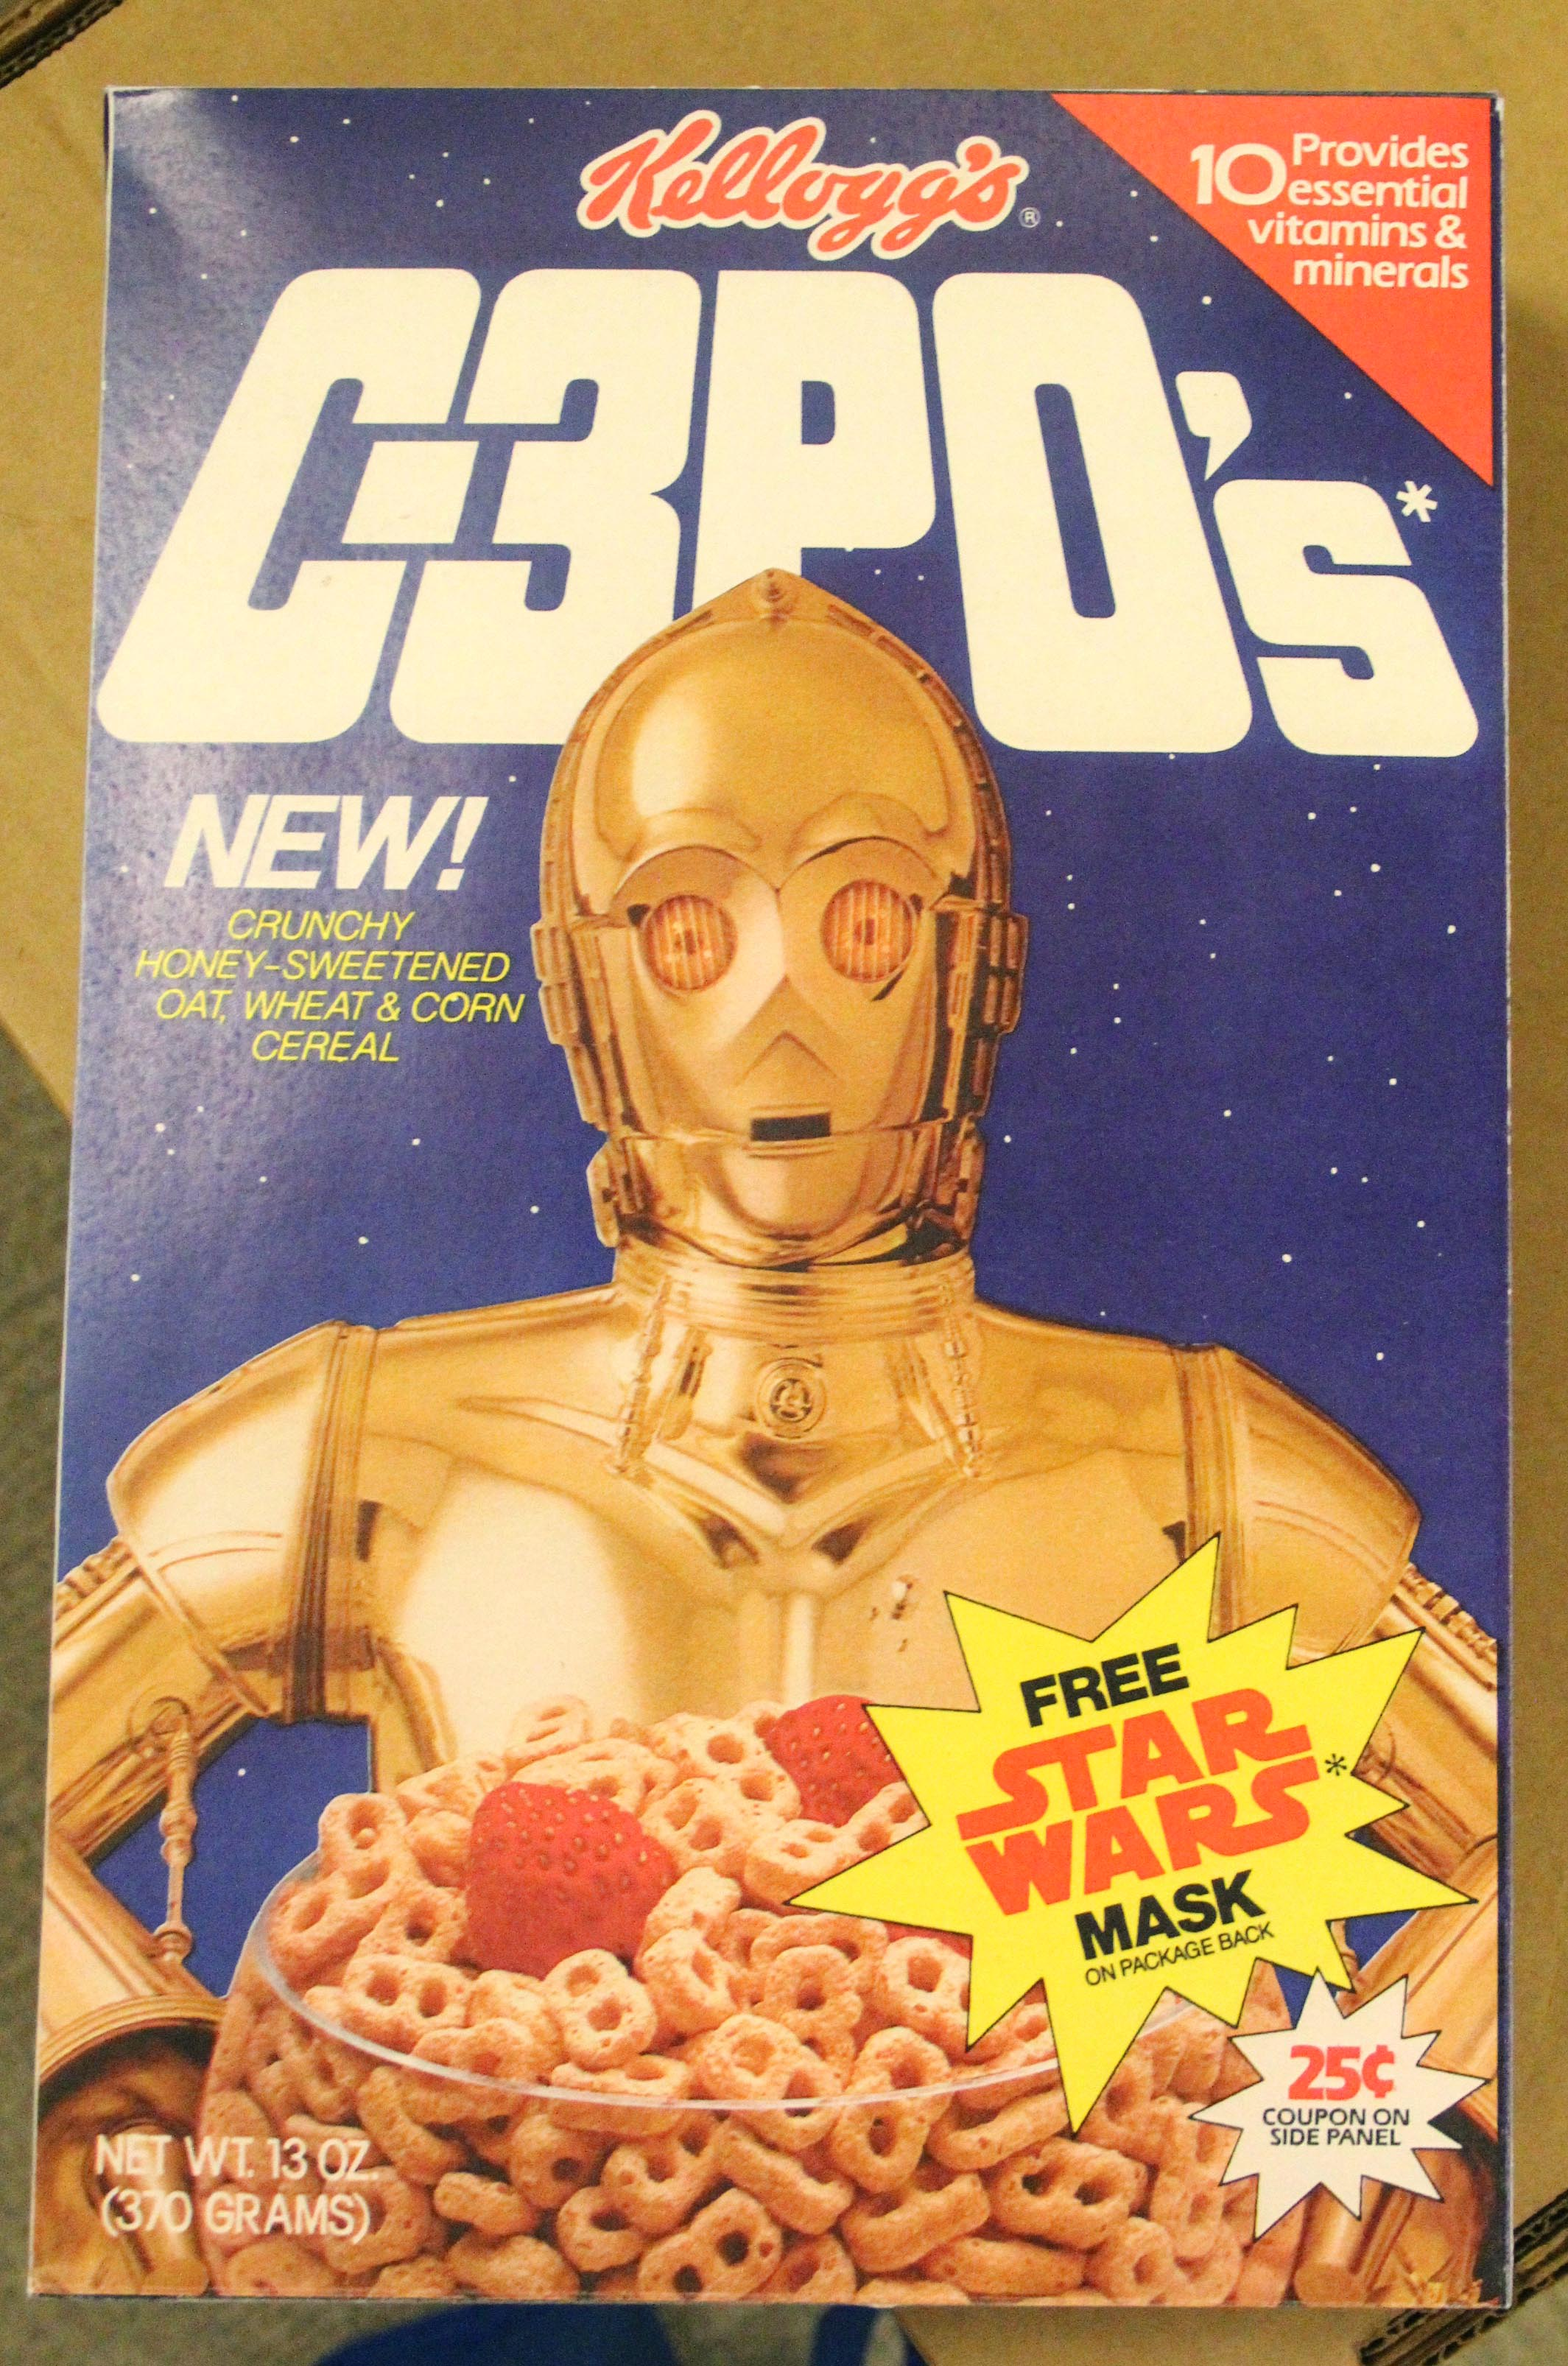 Kellogg's C3PO's Cereal Box from Star Wars